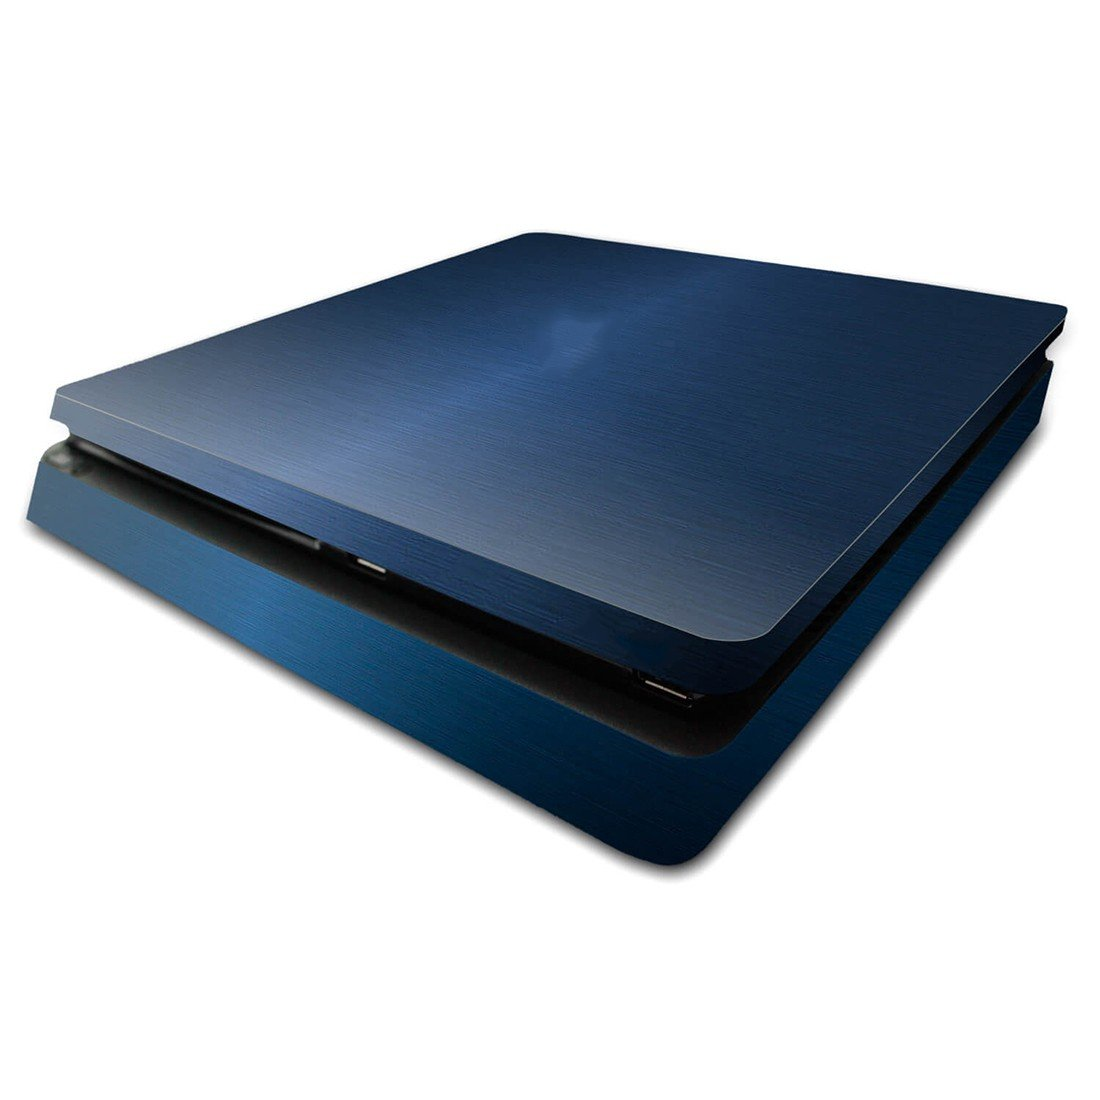 Classic blue ps4 slim skin decal for console and controllers